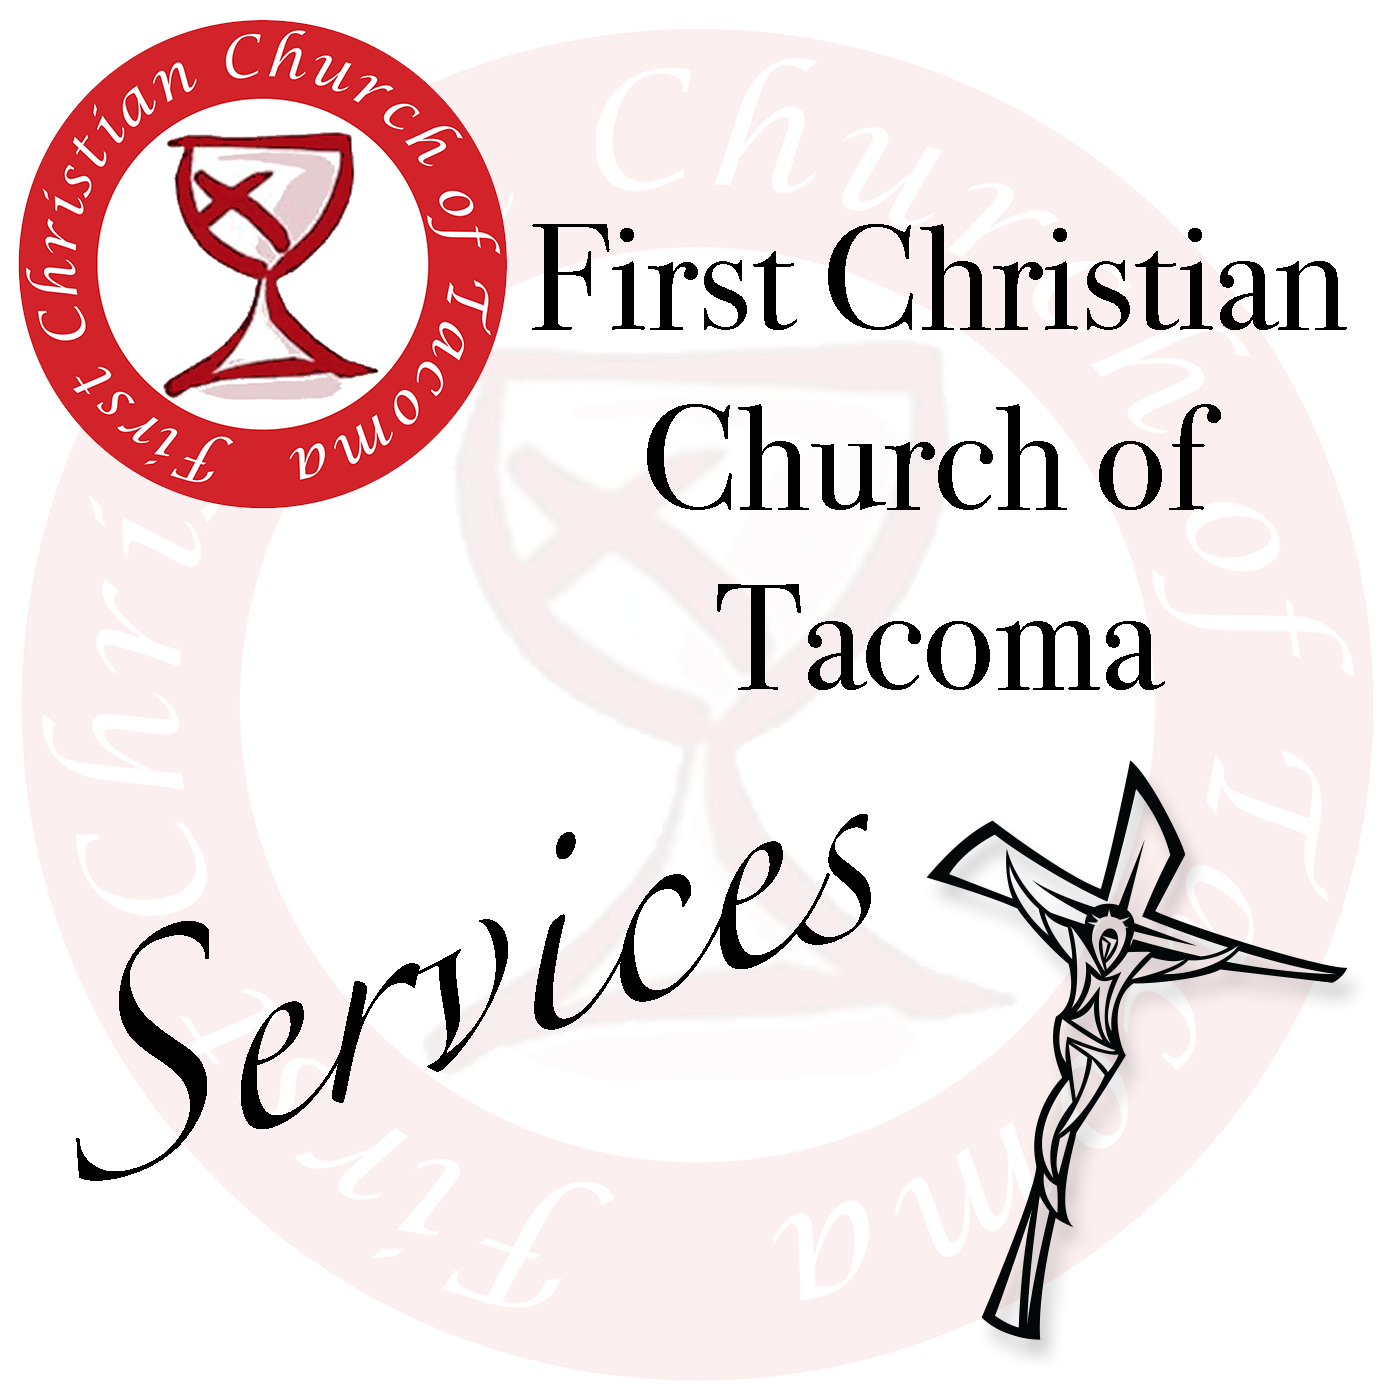 Services - First Christian Church of Tacoma